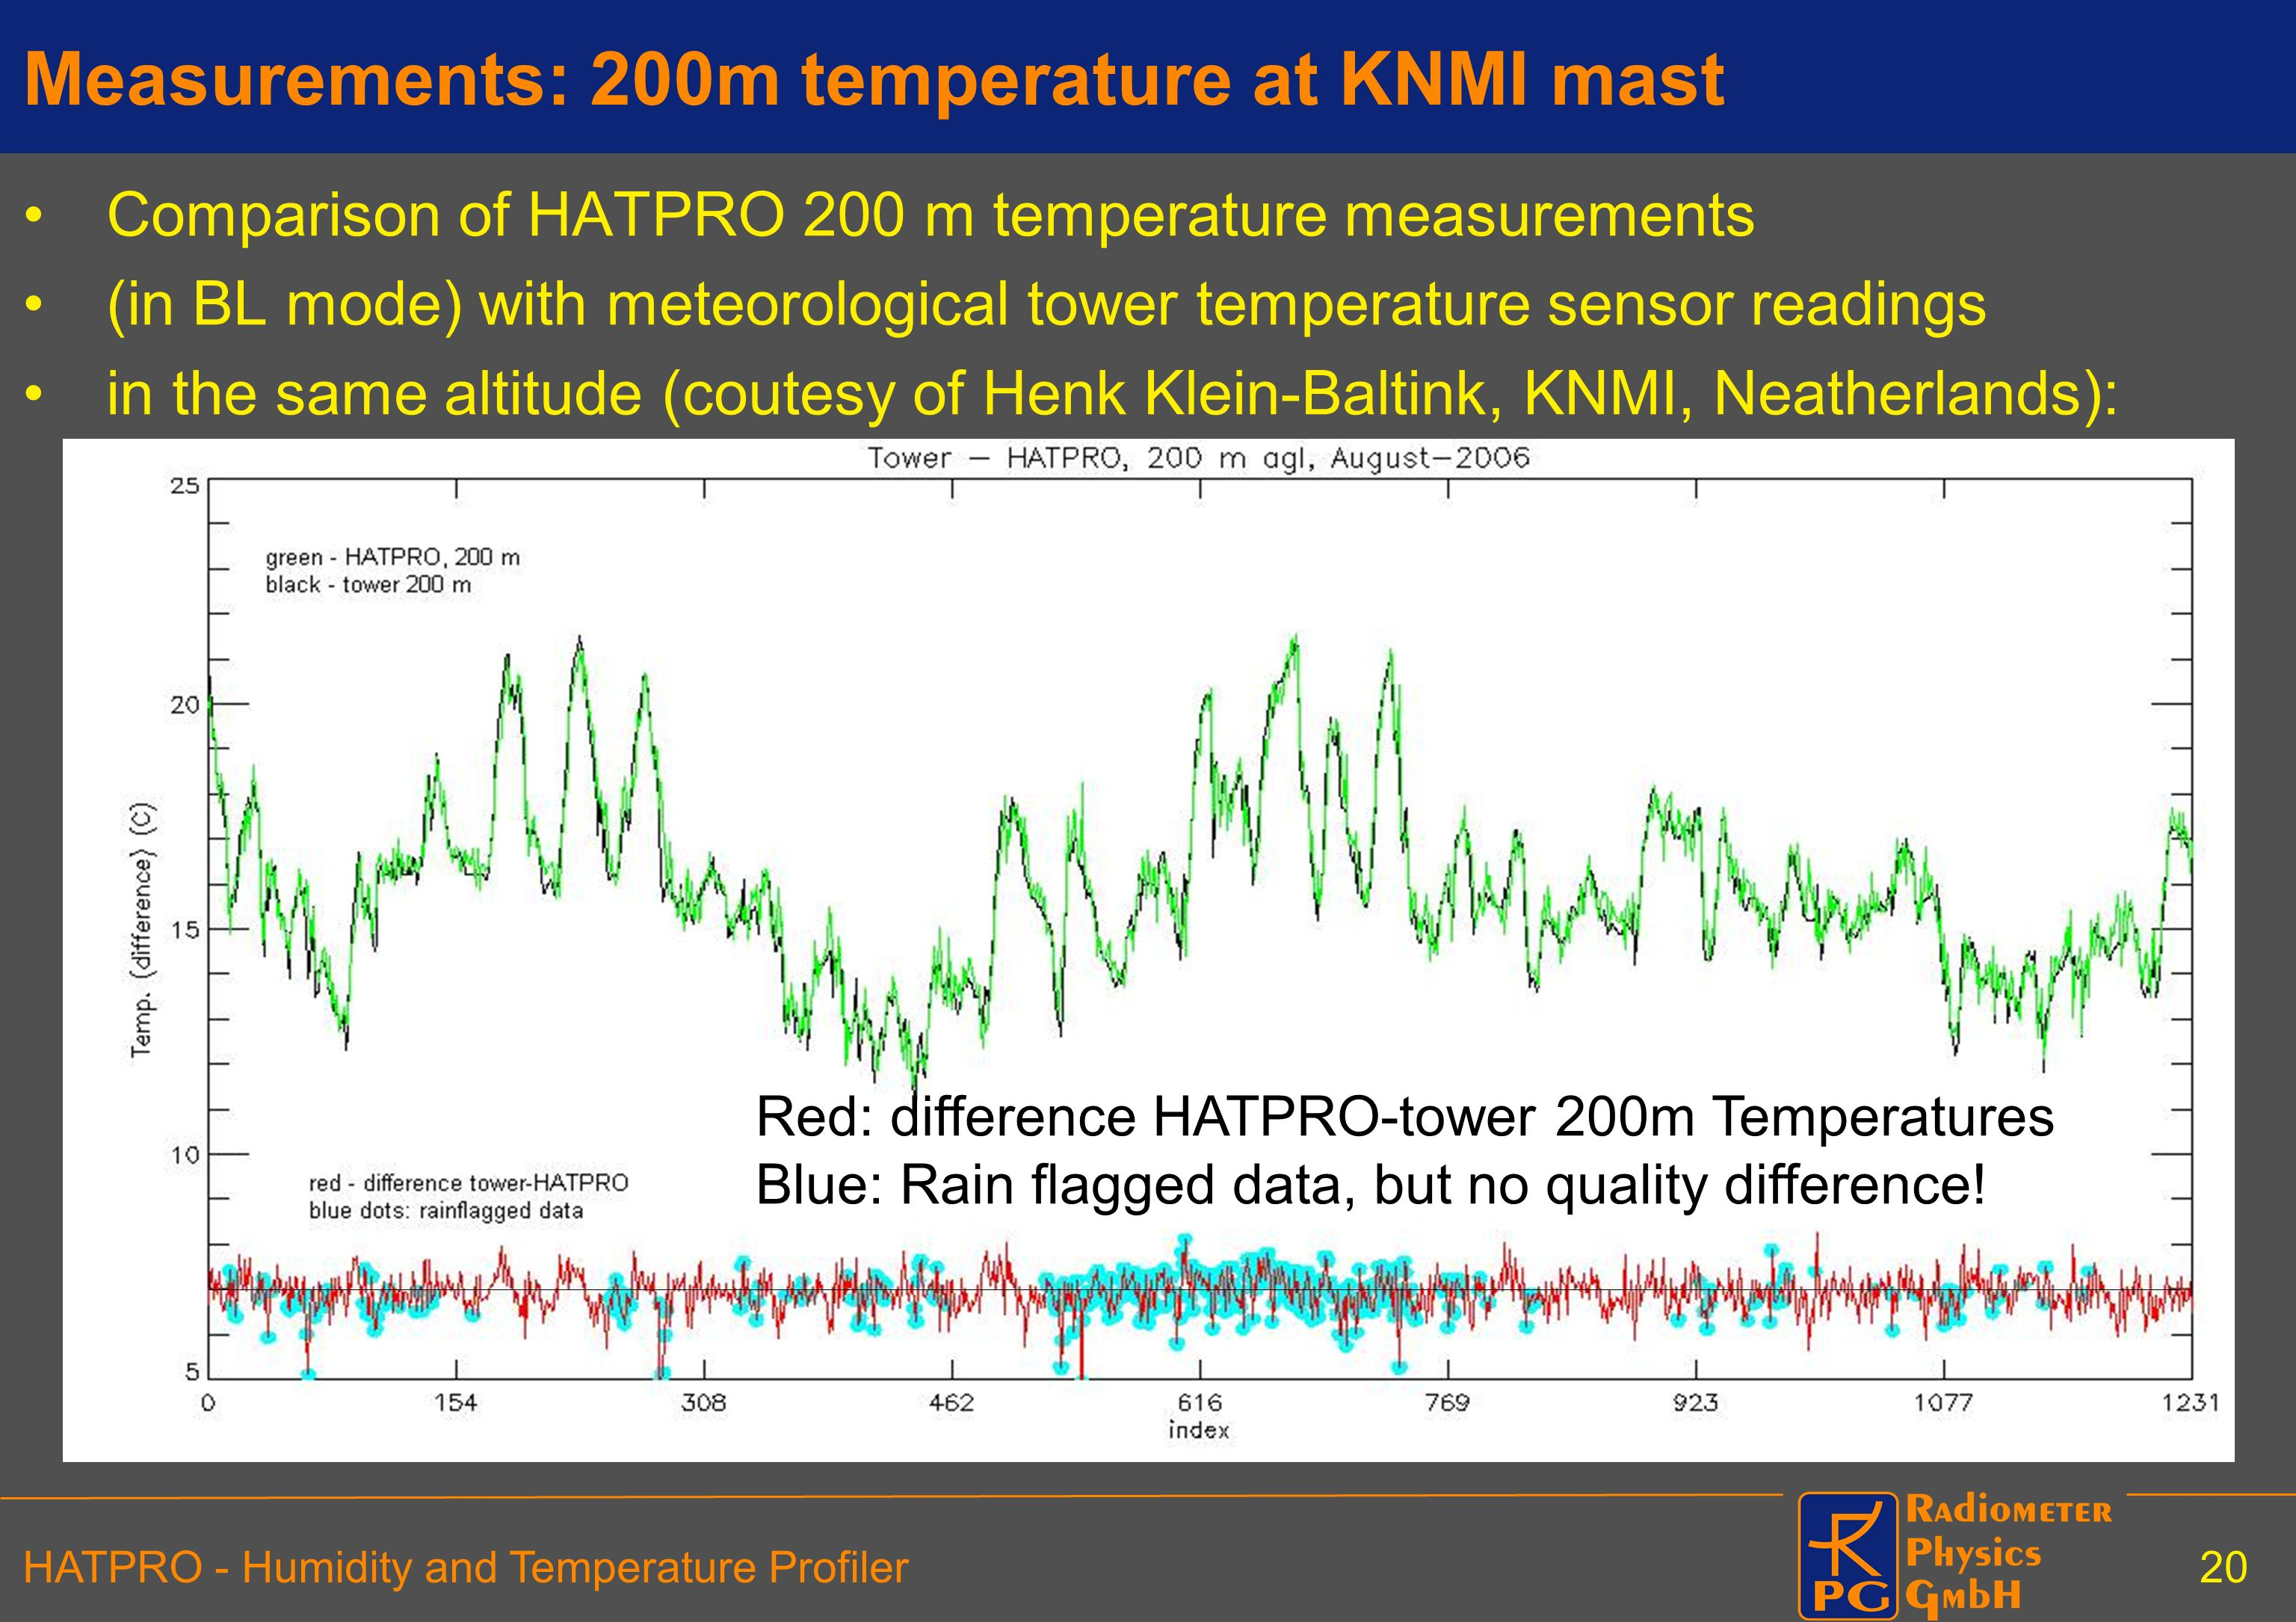 Measurements: 200m temperature at KNMI mast